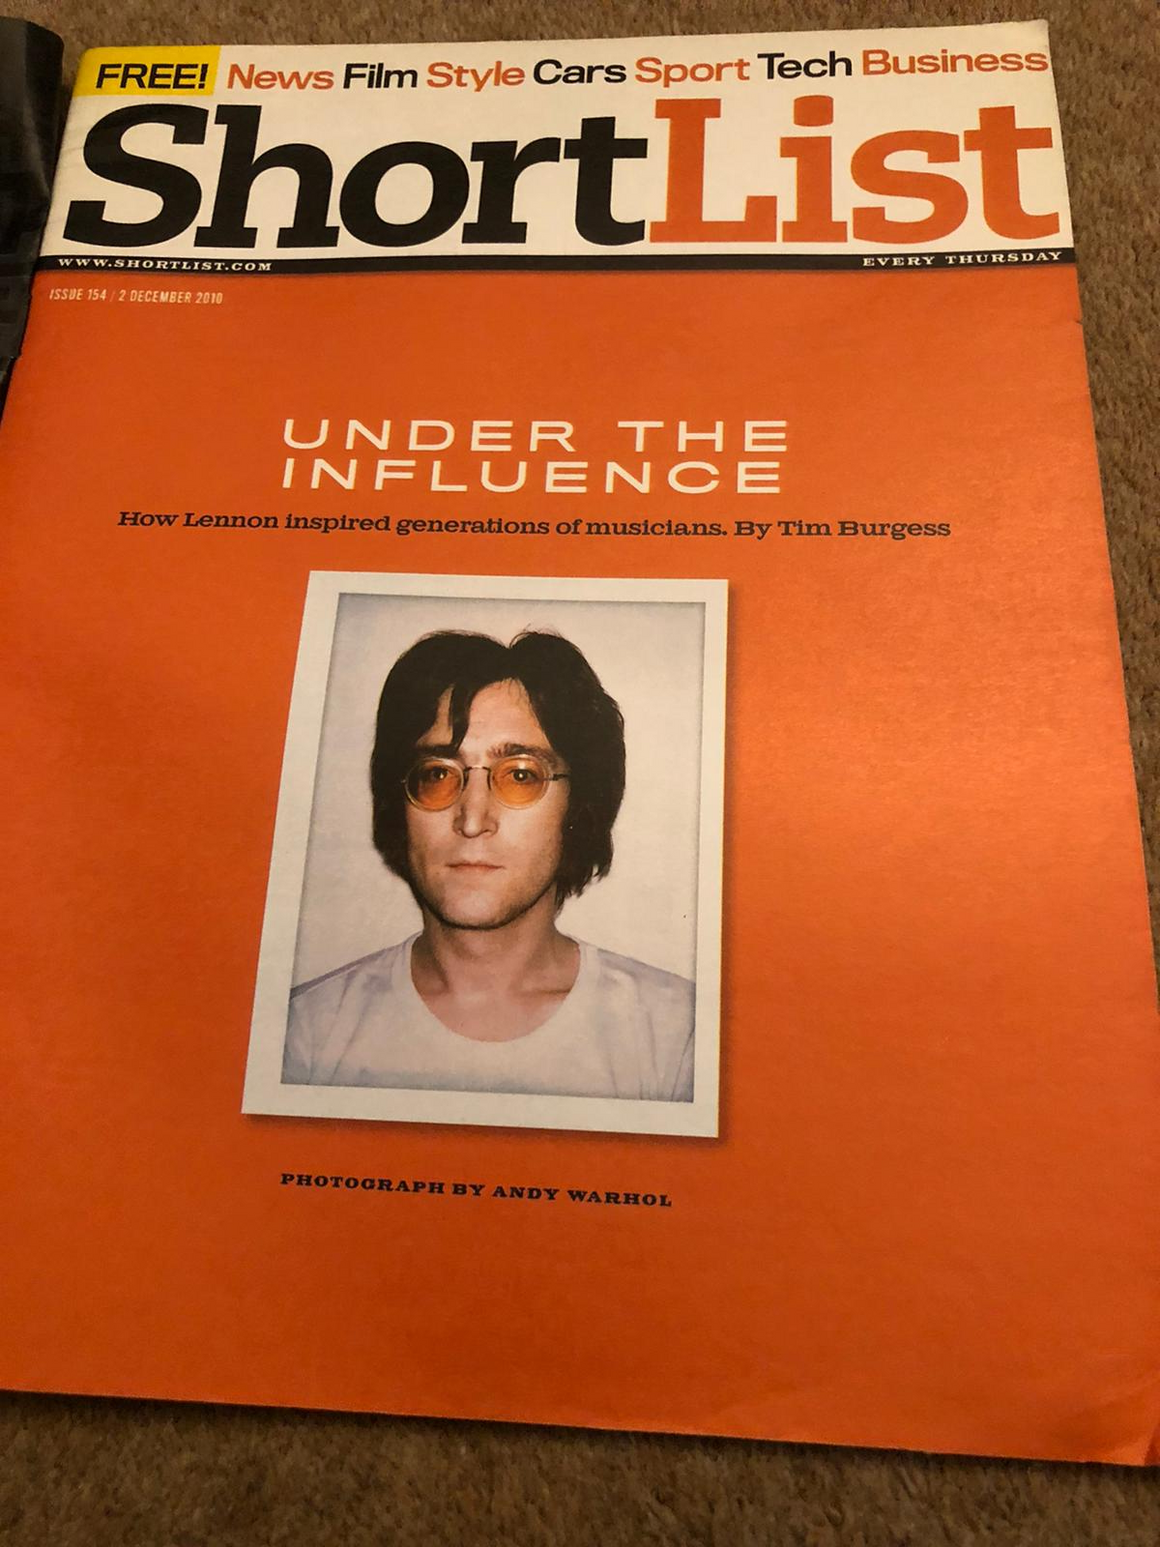 Shortlist Magazine December 2010 John Lennon The Beatles